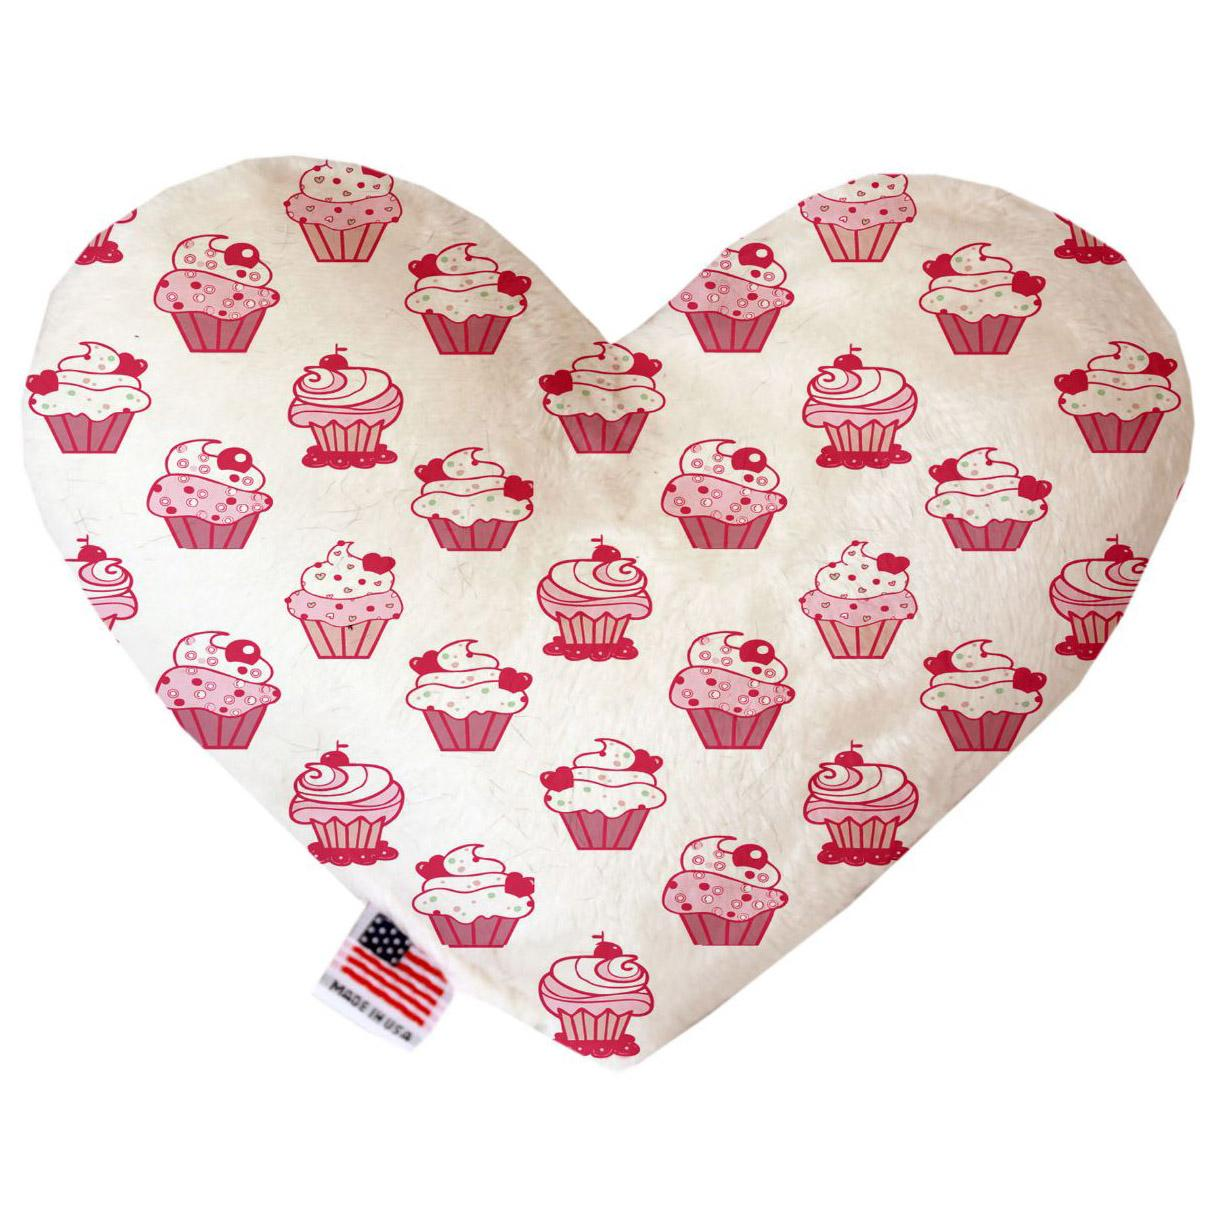 Heart Dog Toy - Pink Whimsy Cupcakes